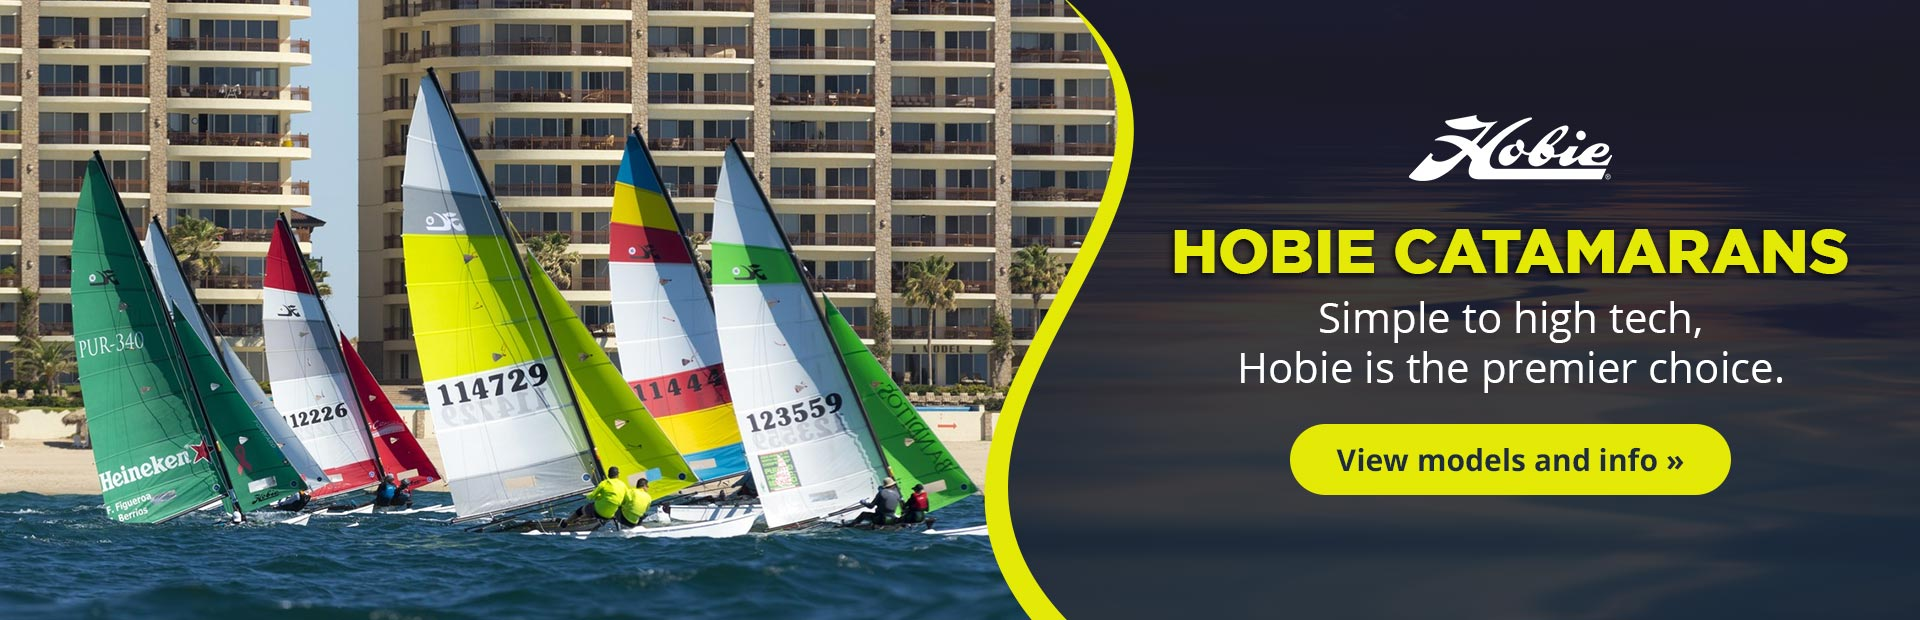 Hobie Catamarans: Simple to high tech, Hobie is the premier choice.